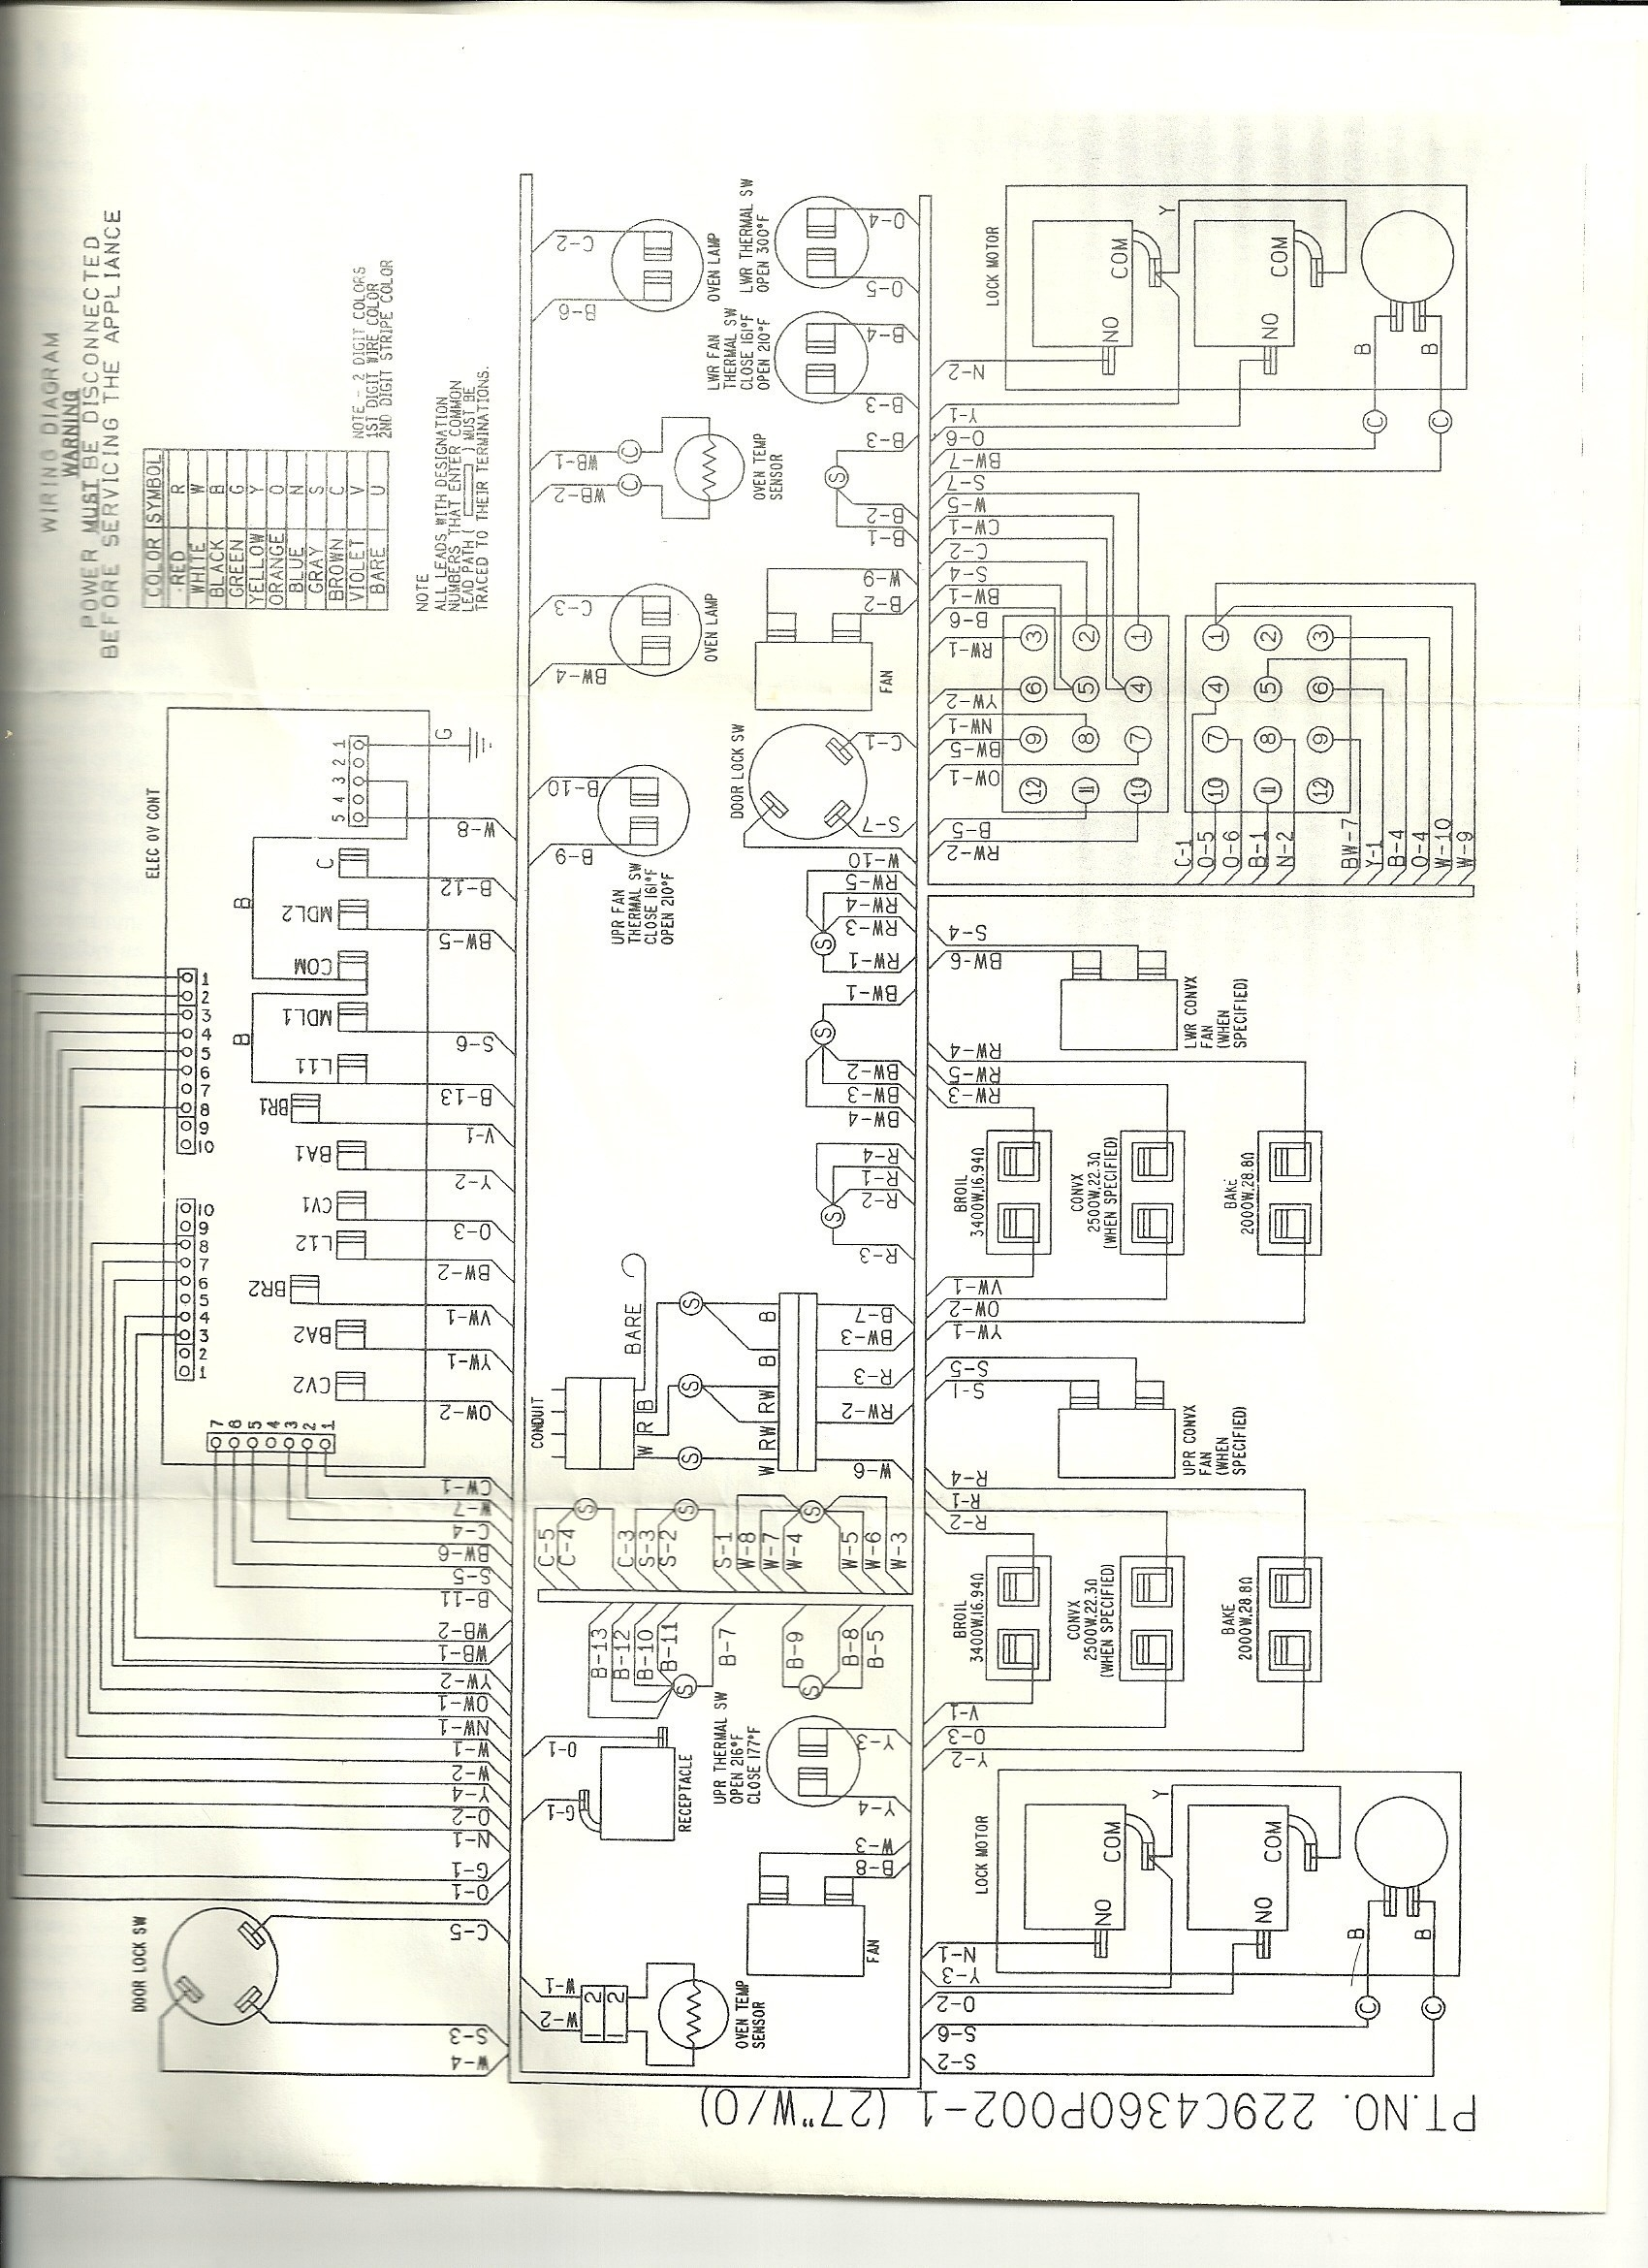 Ge Wire Diagram | Wiring Diagram Ge Dehumidifier Wiring Schematics on